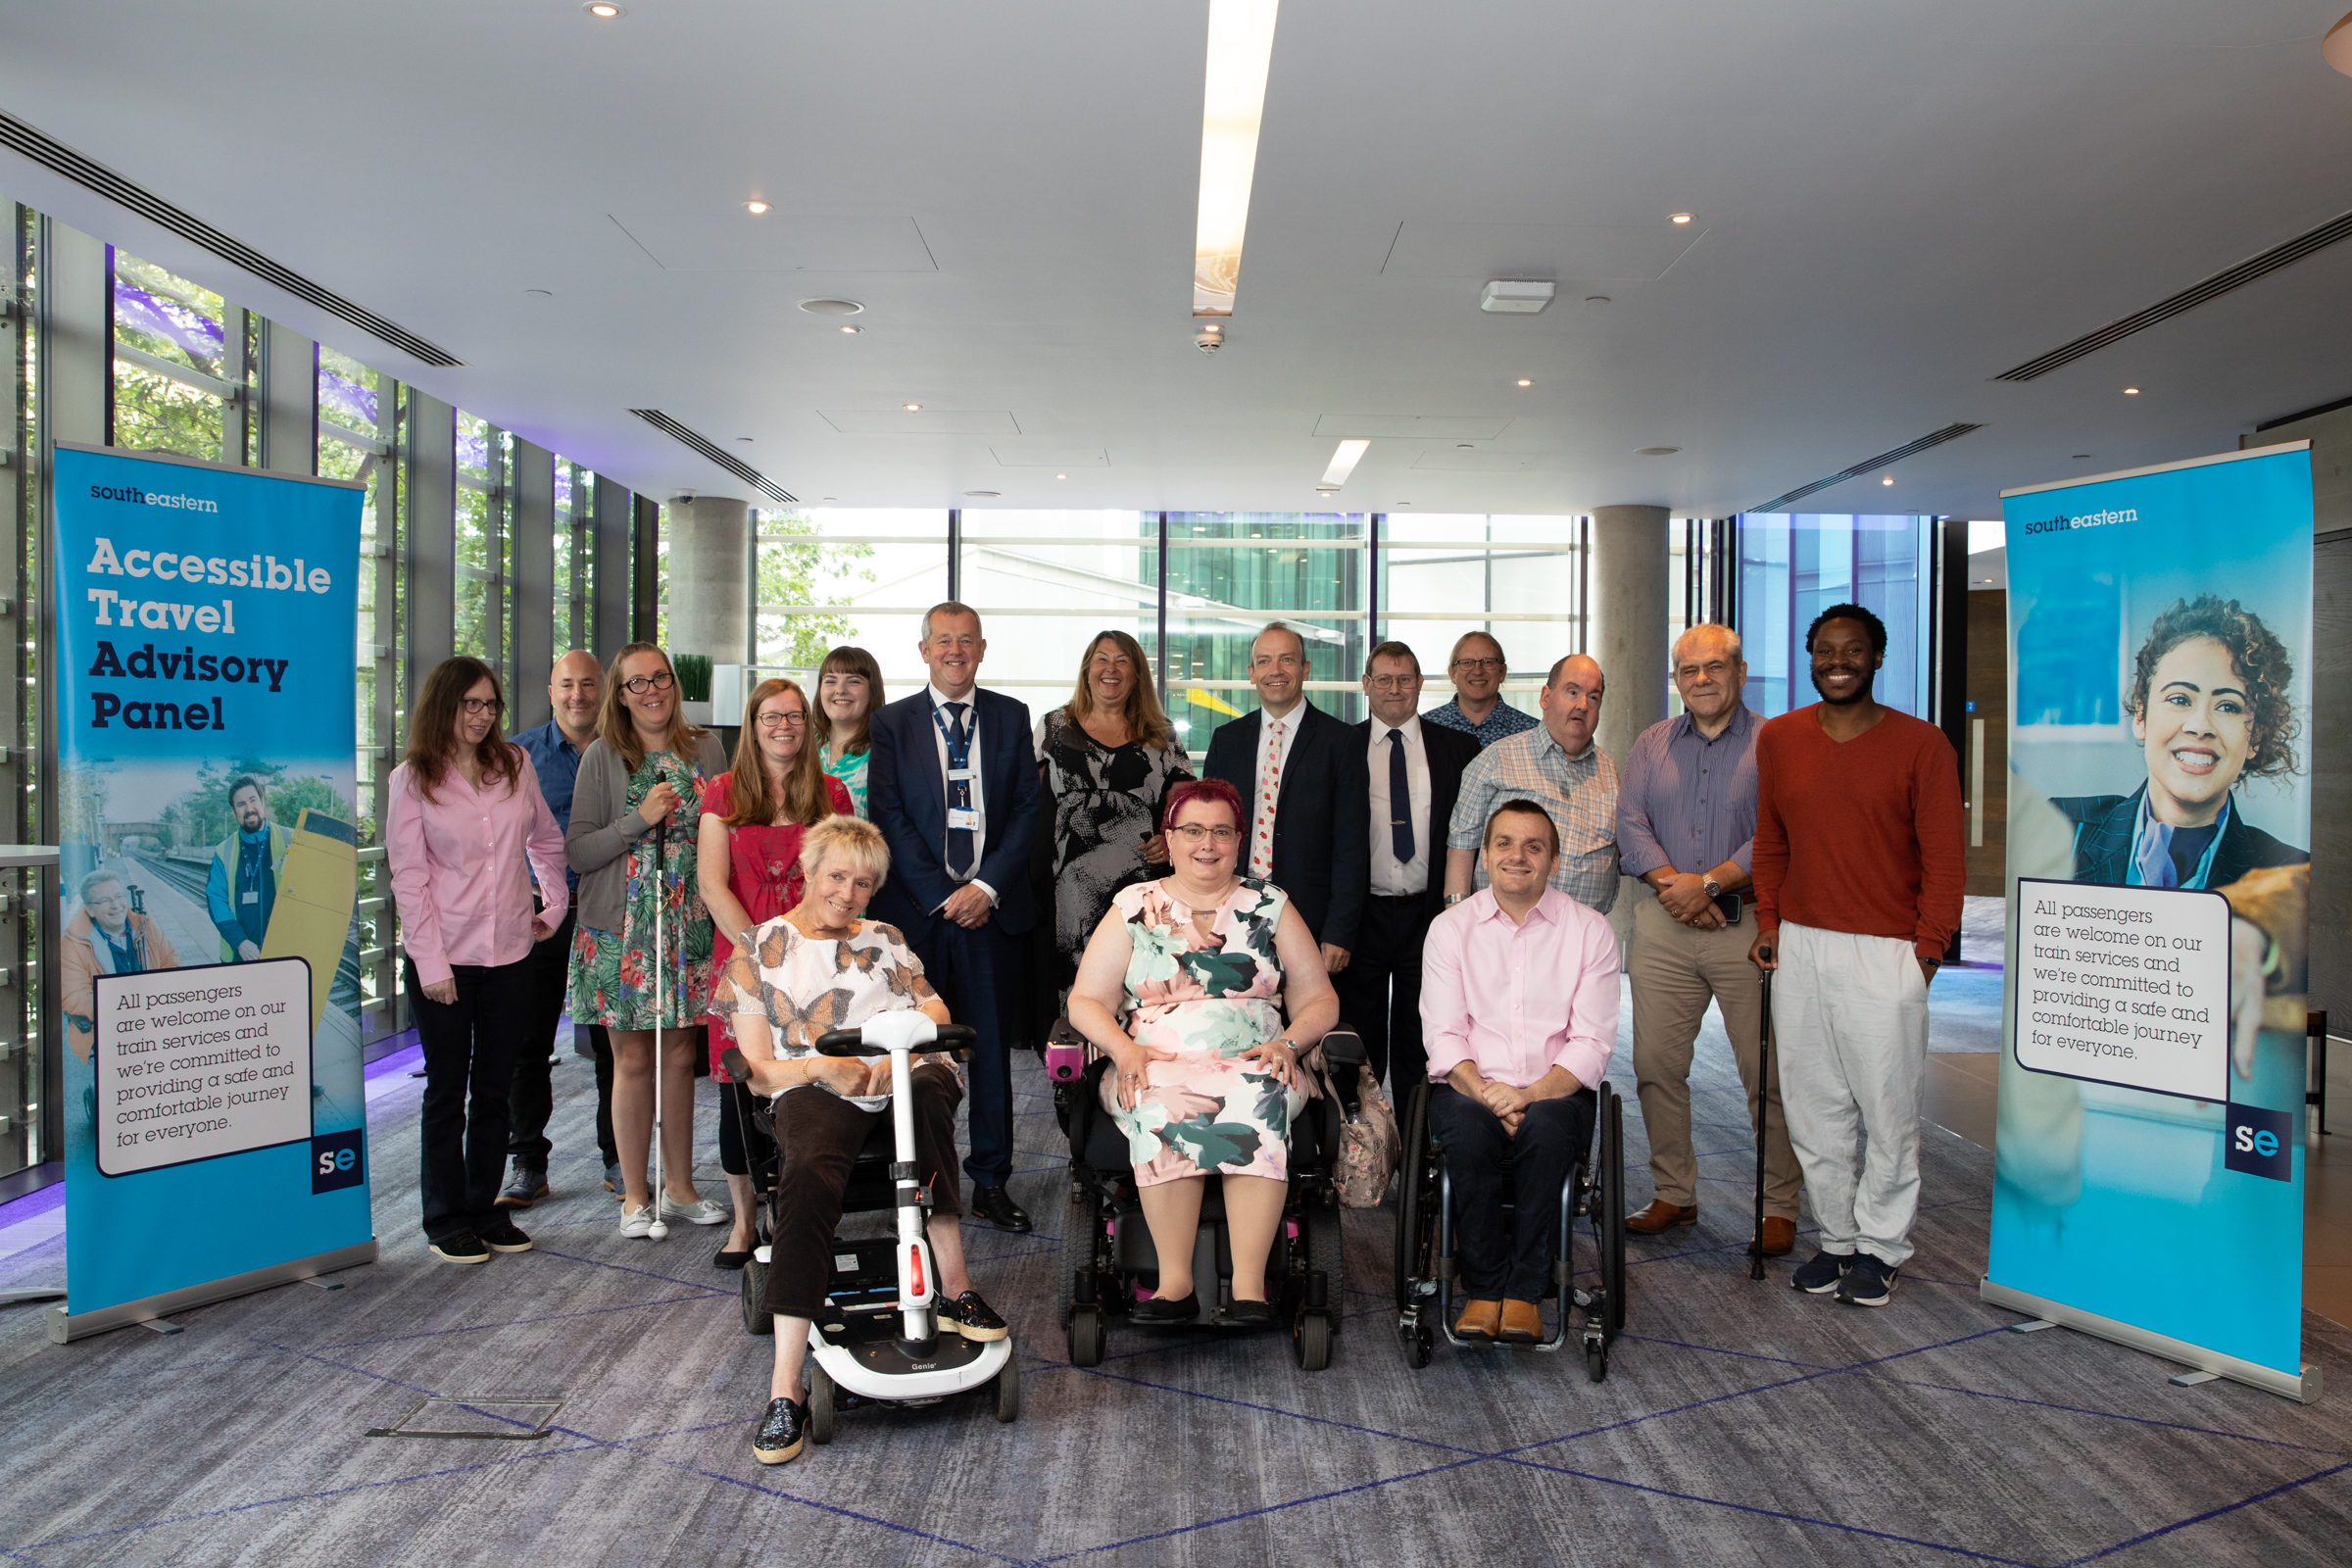 SER Launches new Accessible Travel Advisory Panel